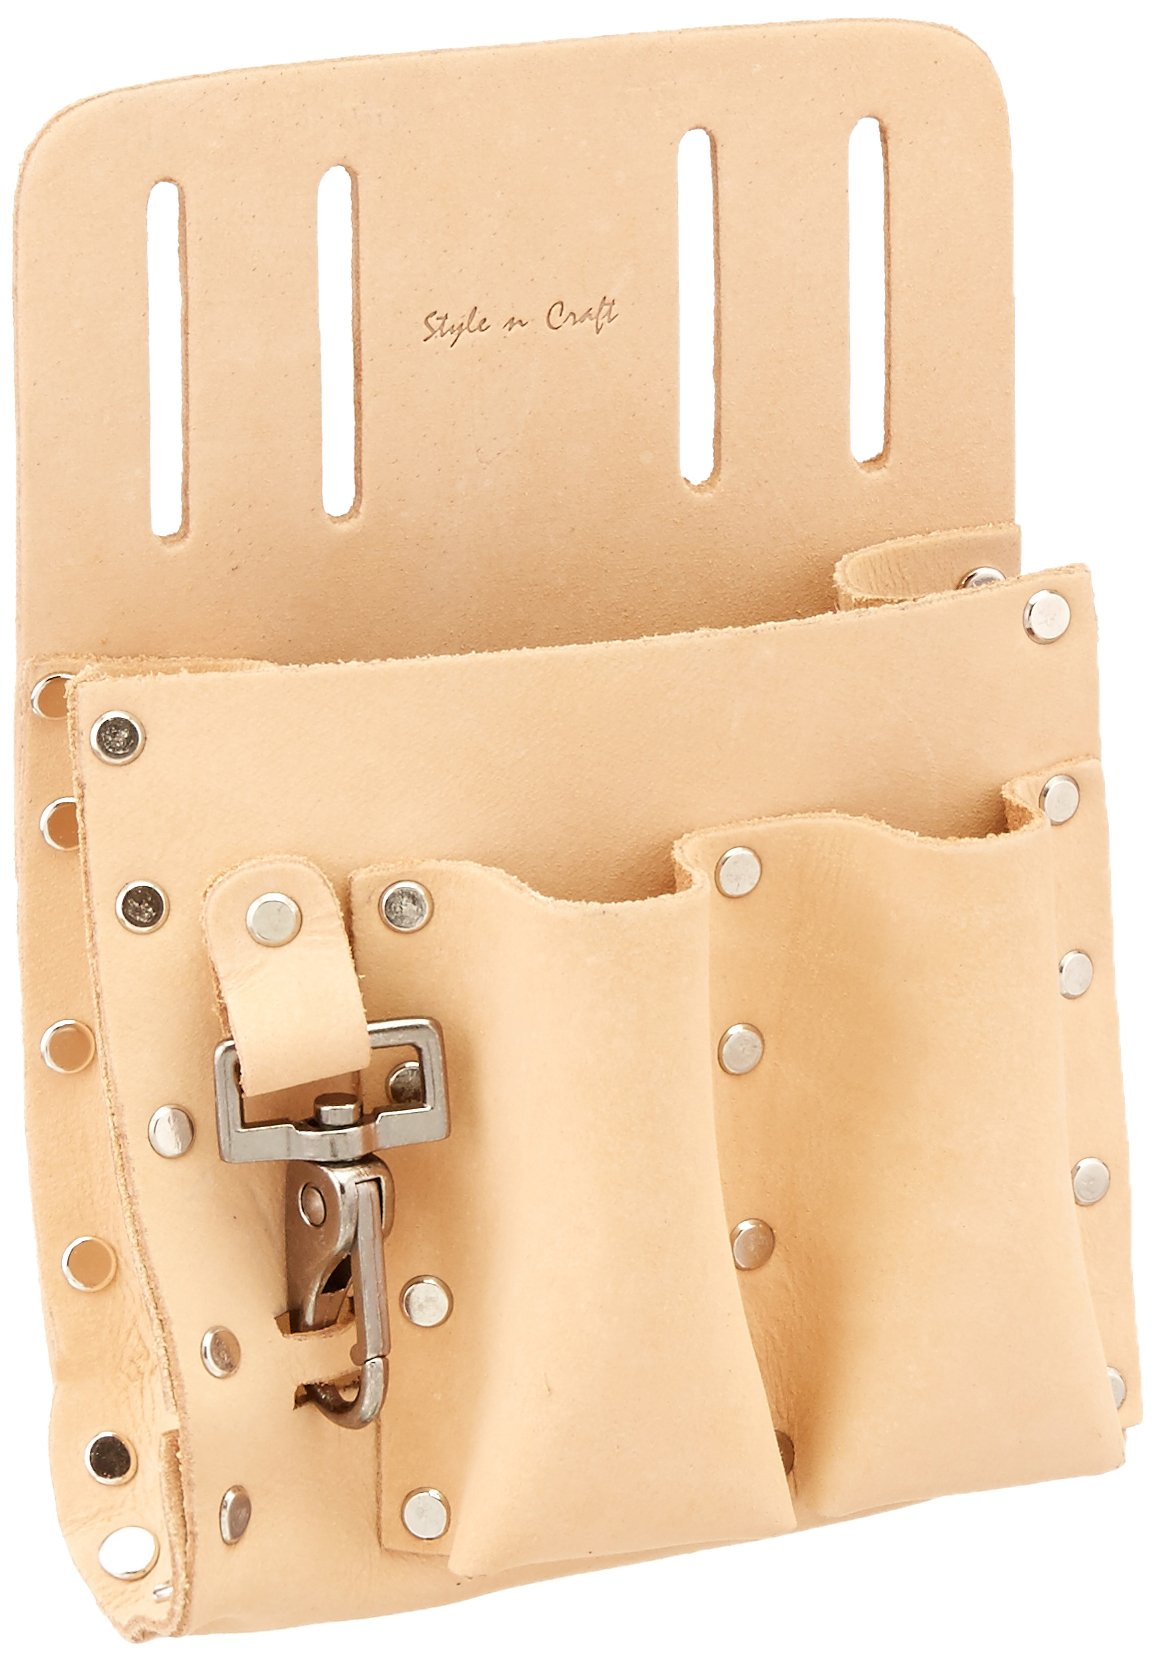 Style n Craft 94-126 5 Pocket Tool Pouch in Heavy Top Grain Leather